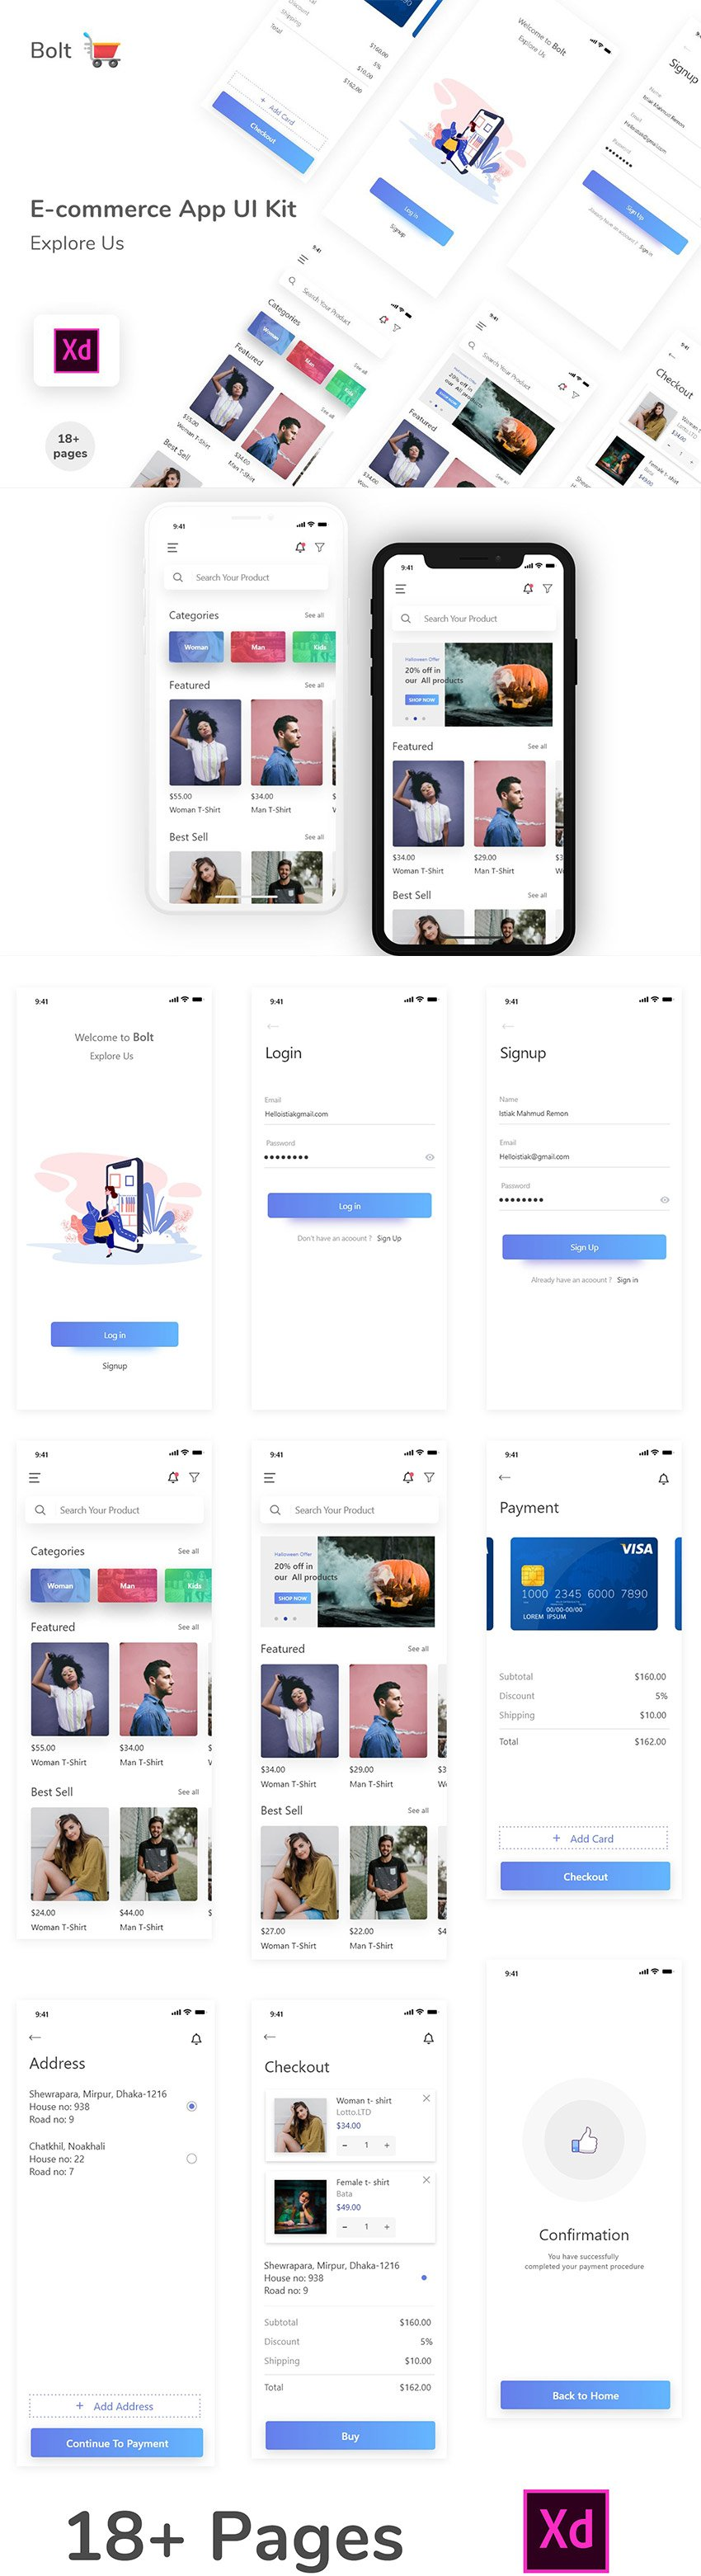 E-commerce UI App Design for Xd - 18 Free Screens